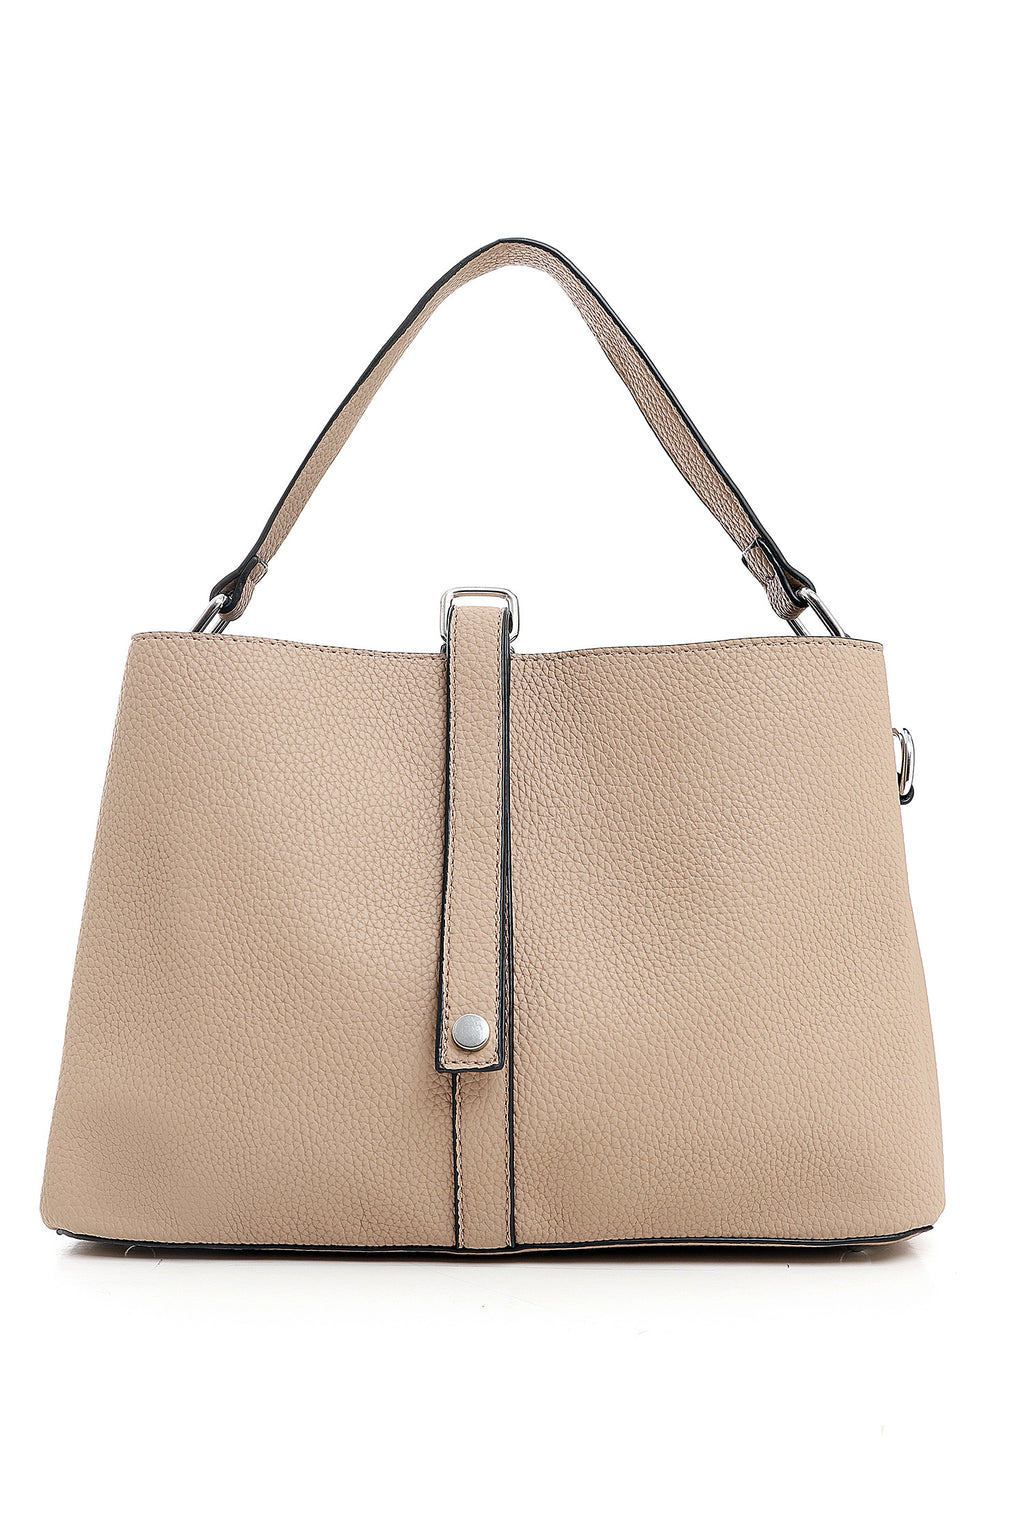 SATCHEL BAG-KHAKI